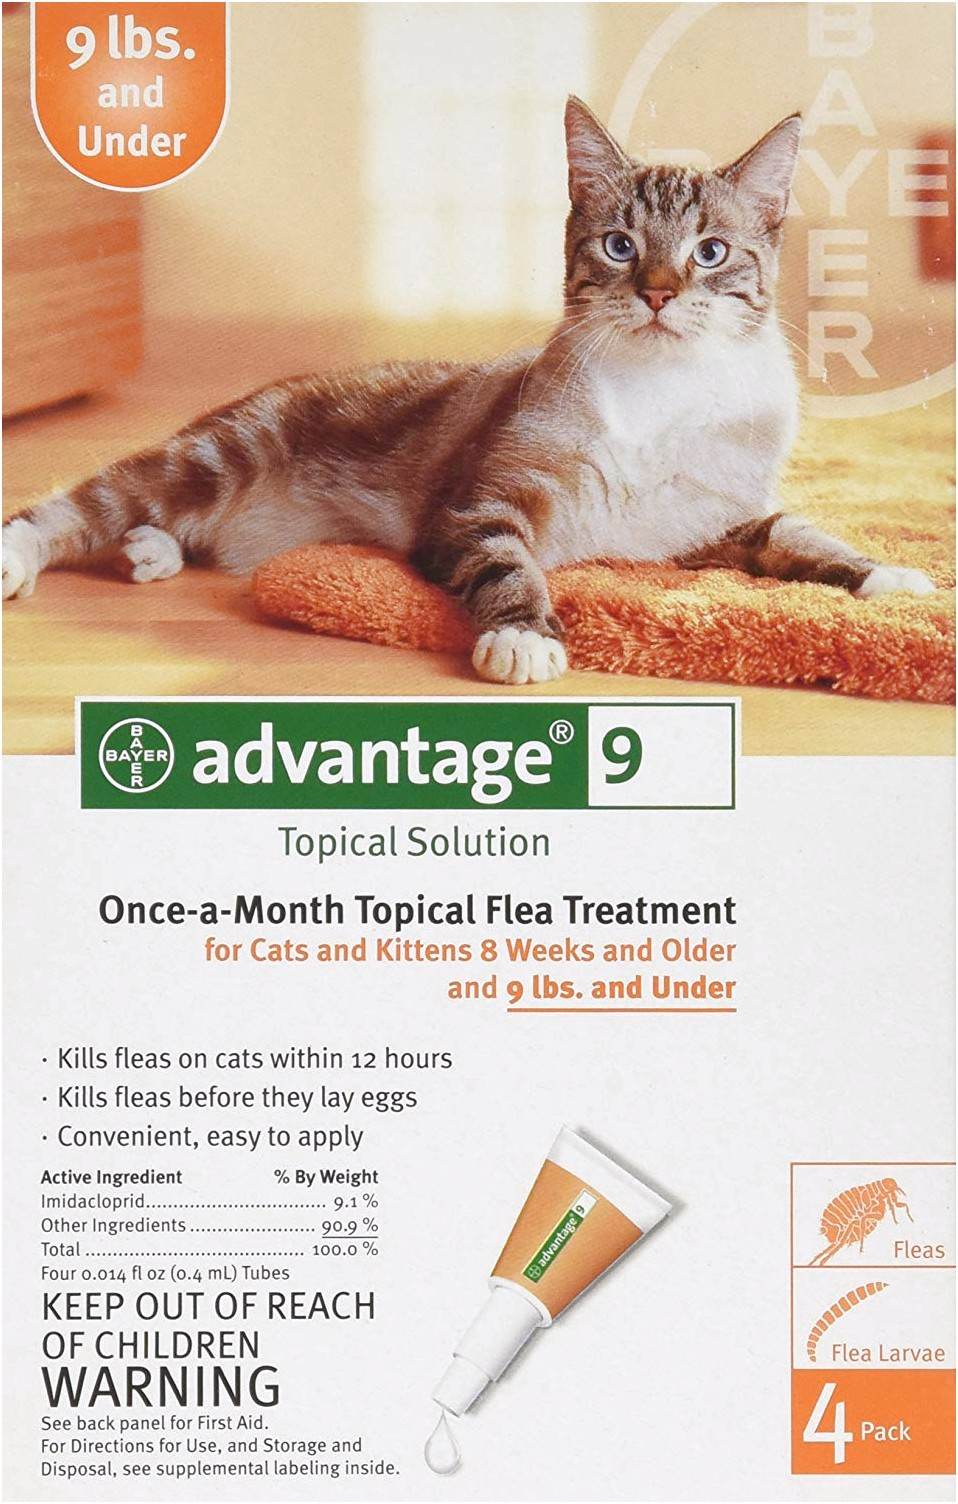 How To Treat Fleas On Cats